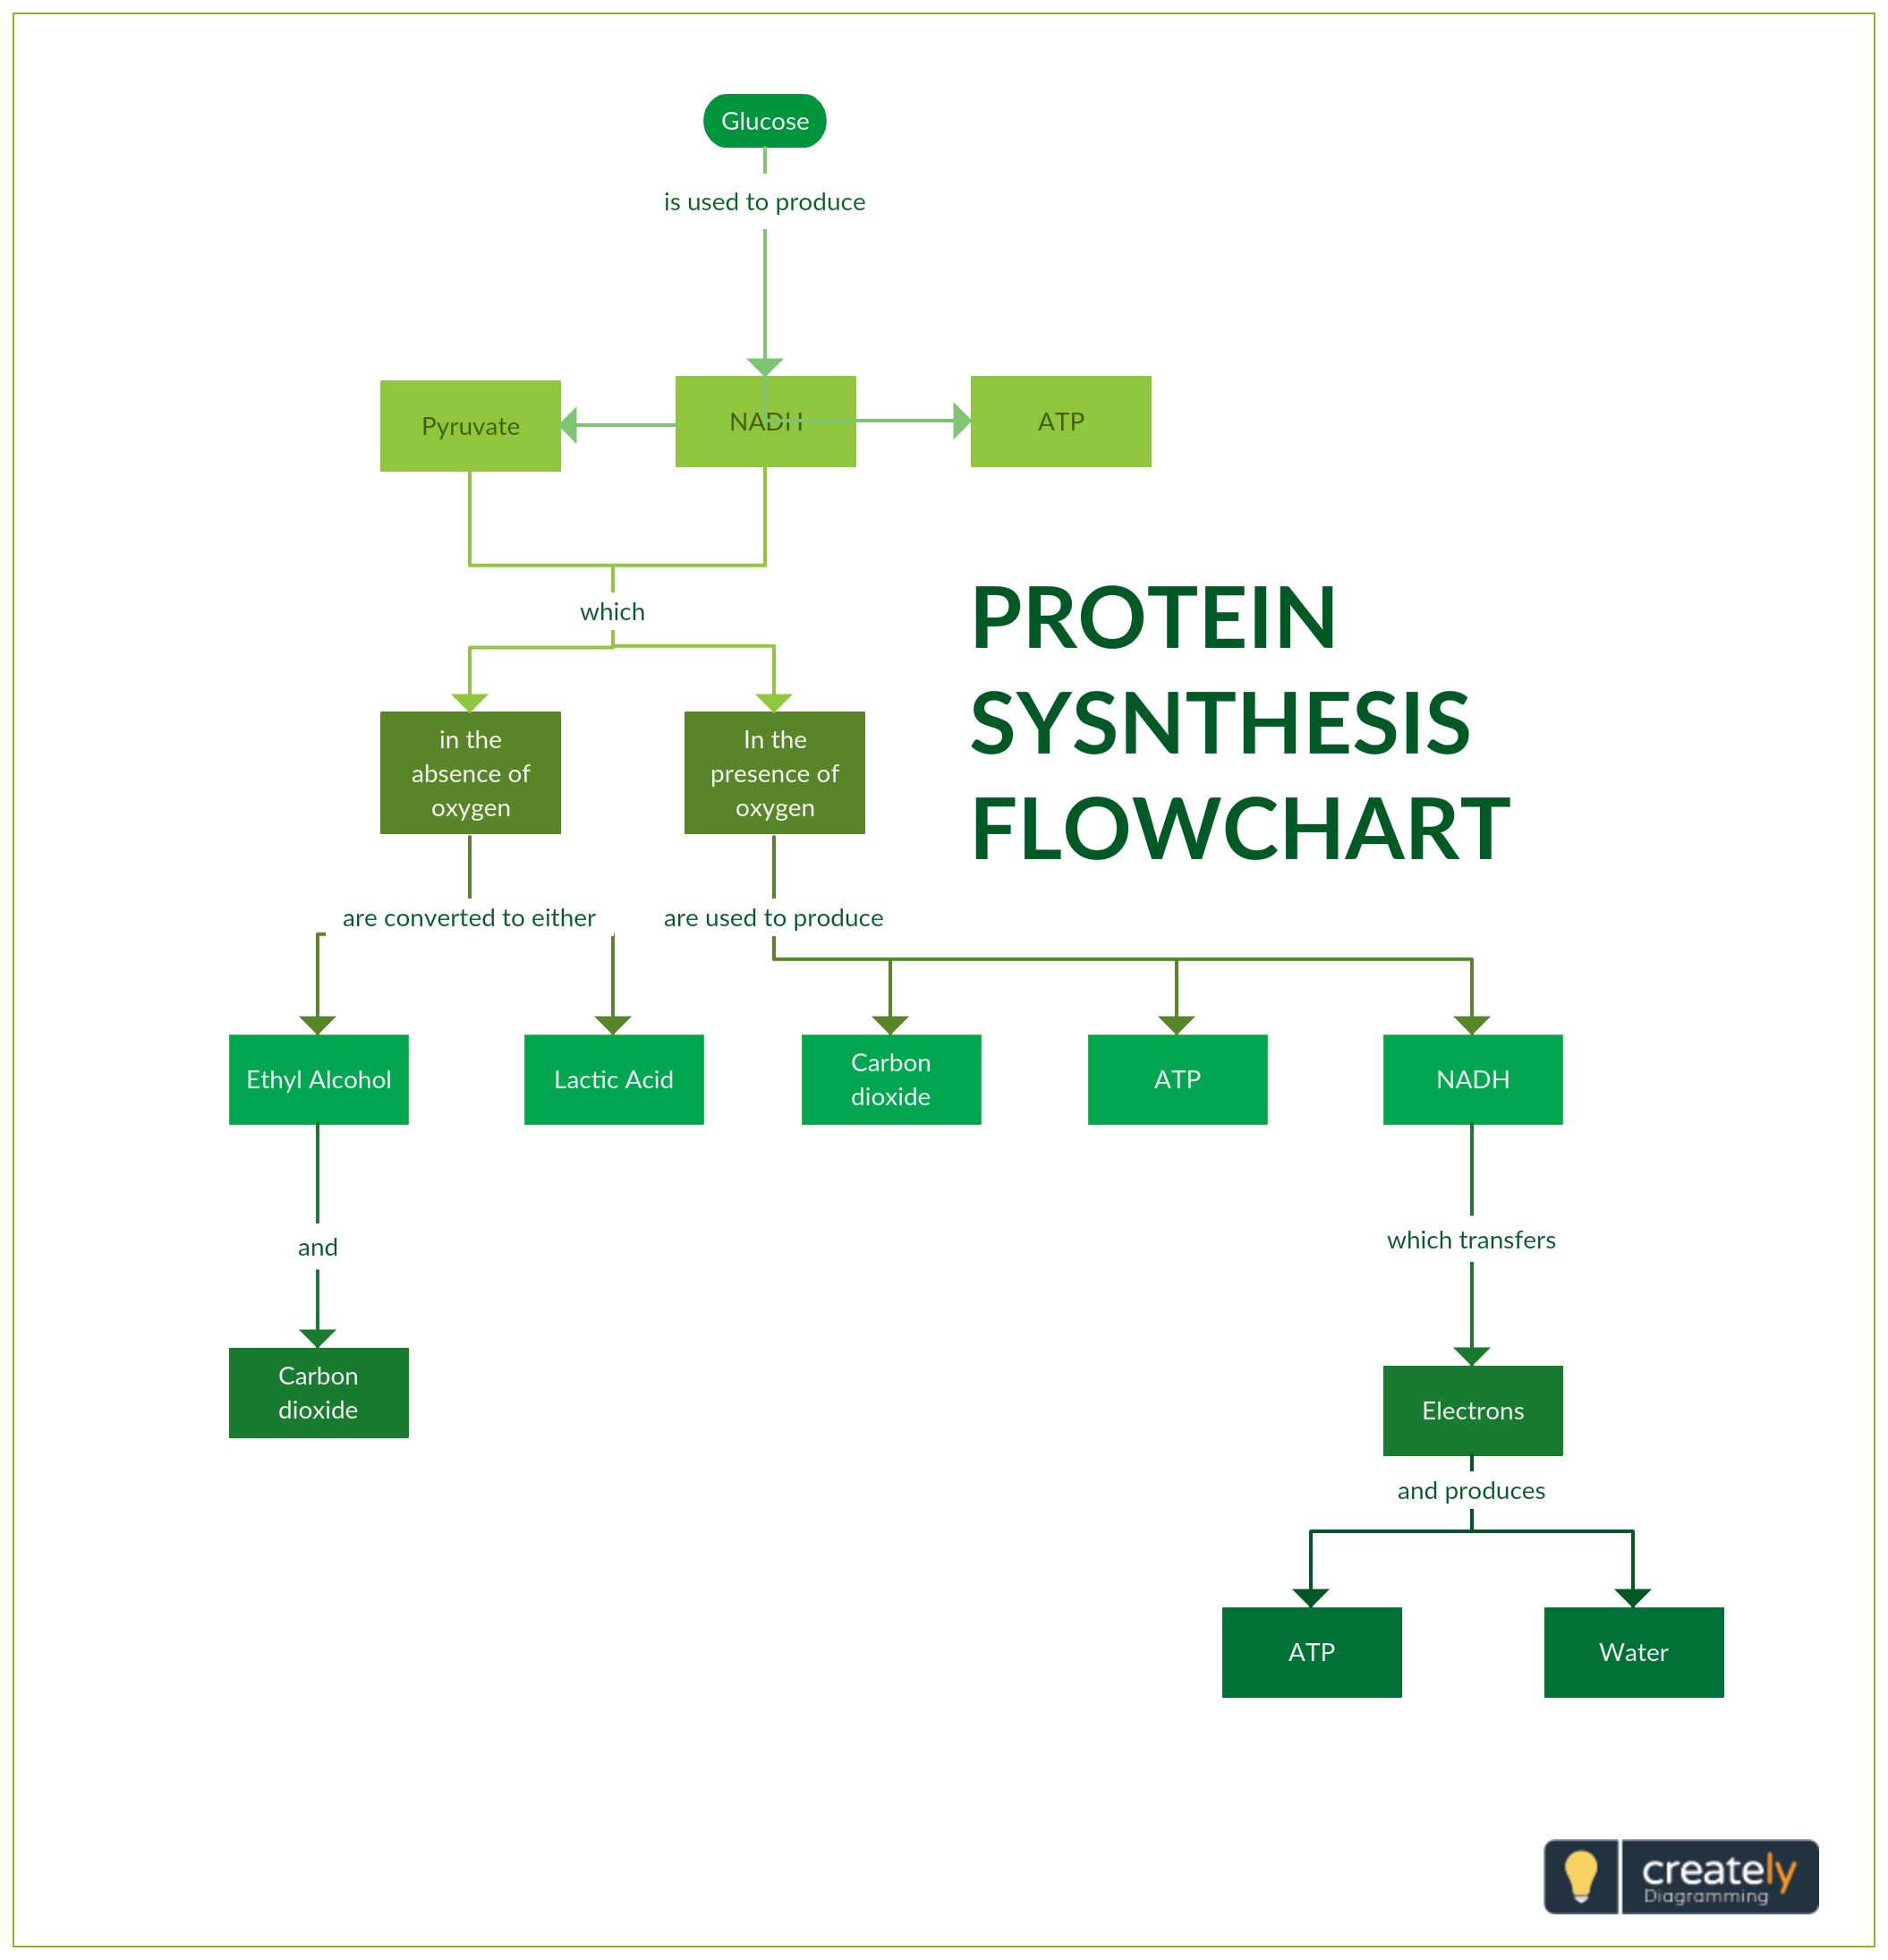 protein synthesis flowchart protein synthesis flow chart shows the process of one of the most complicated biosynthesis mechanisms  [ 2110 x 2190 Pixel ]